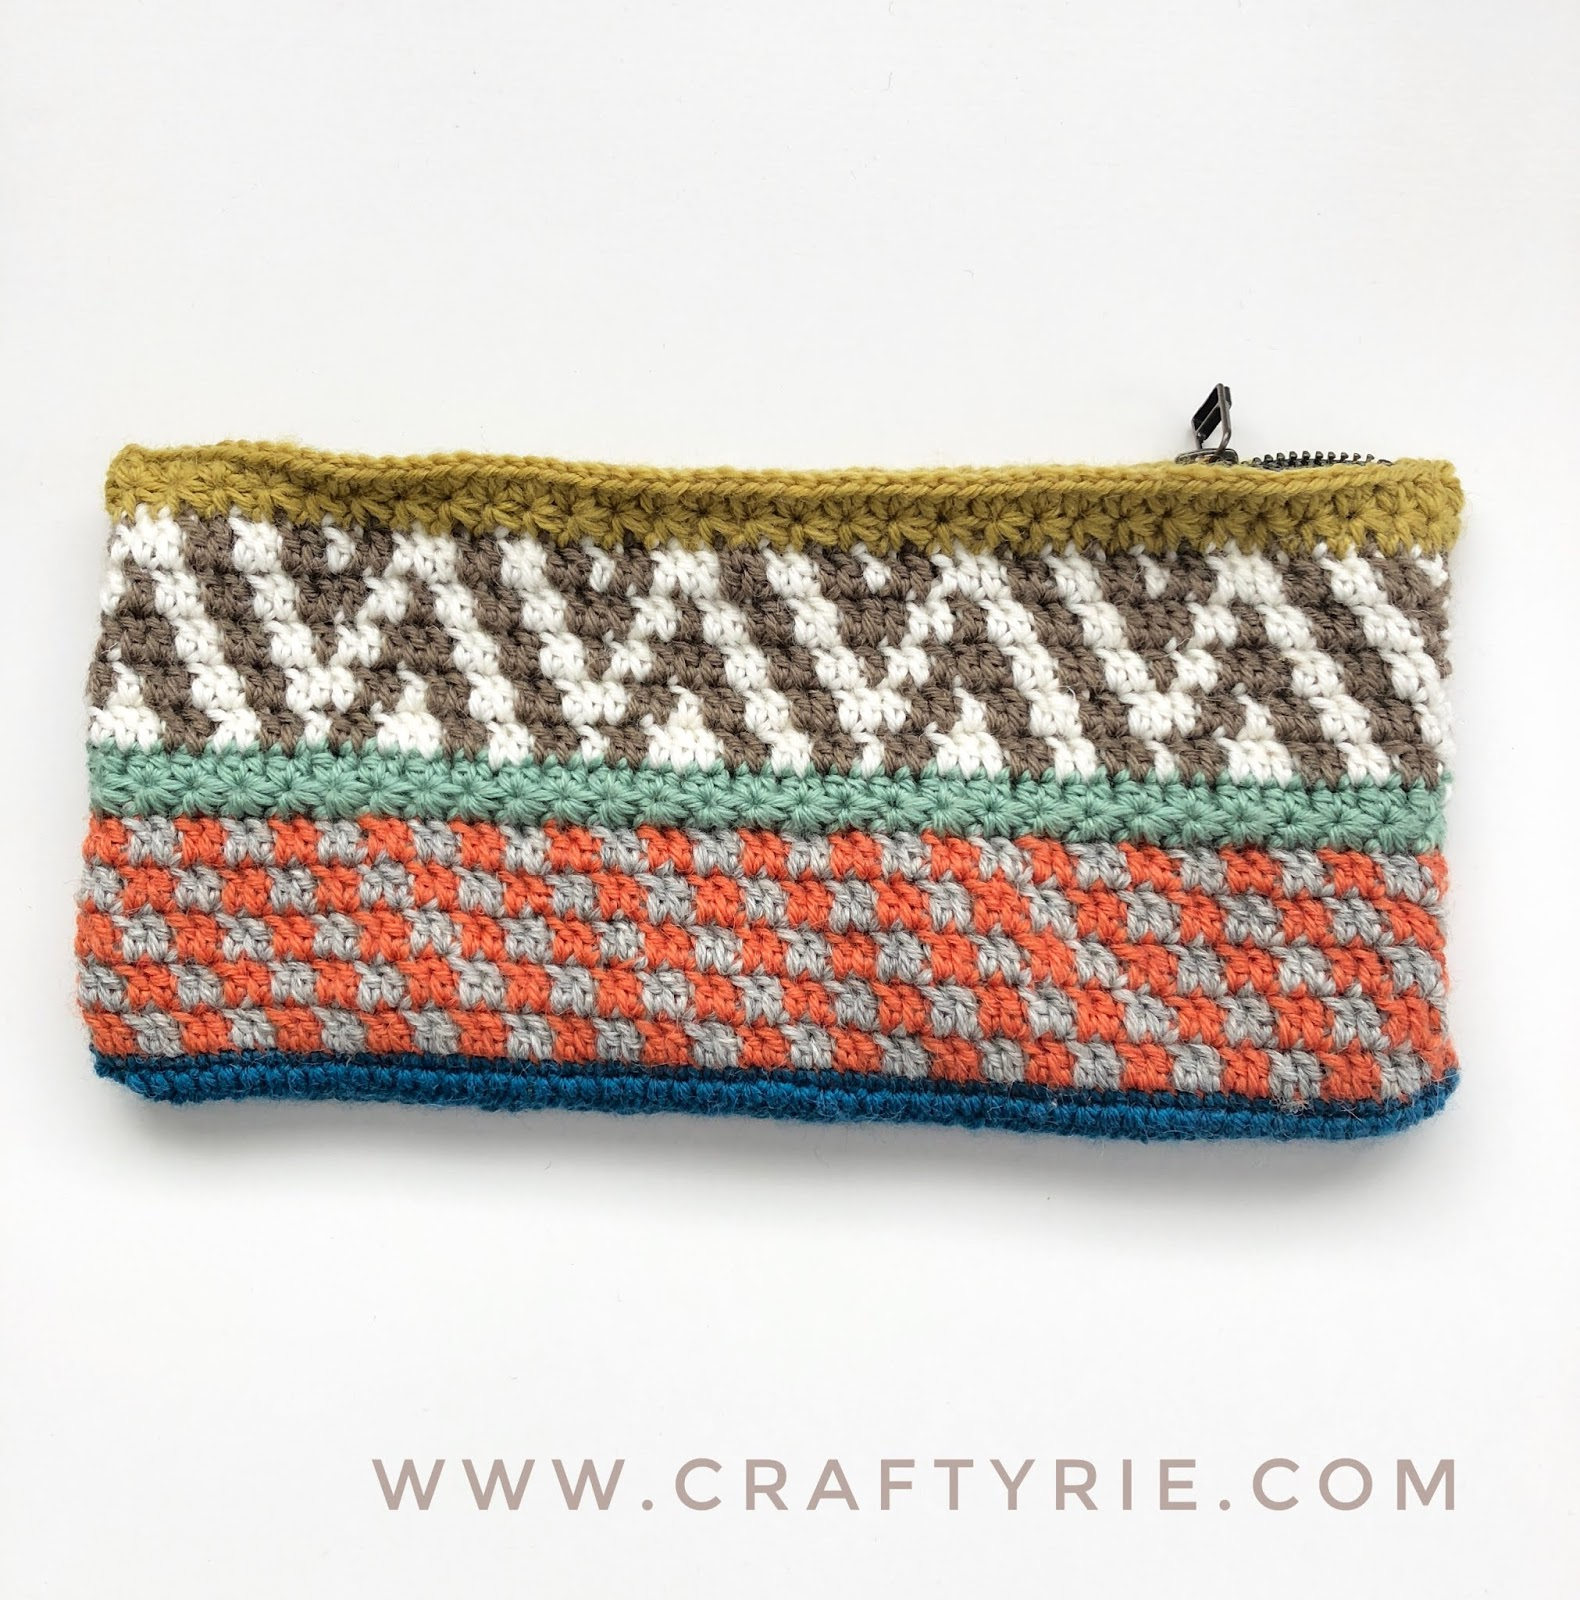 Craftyrie Tapestry Crochet